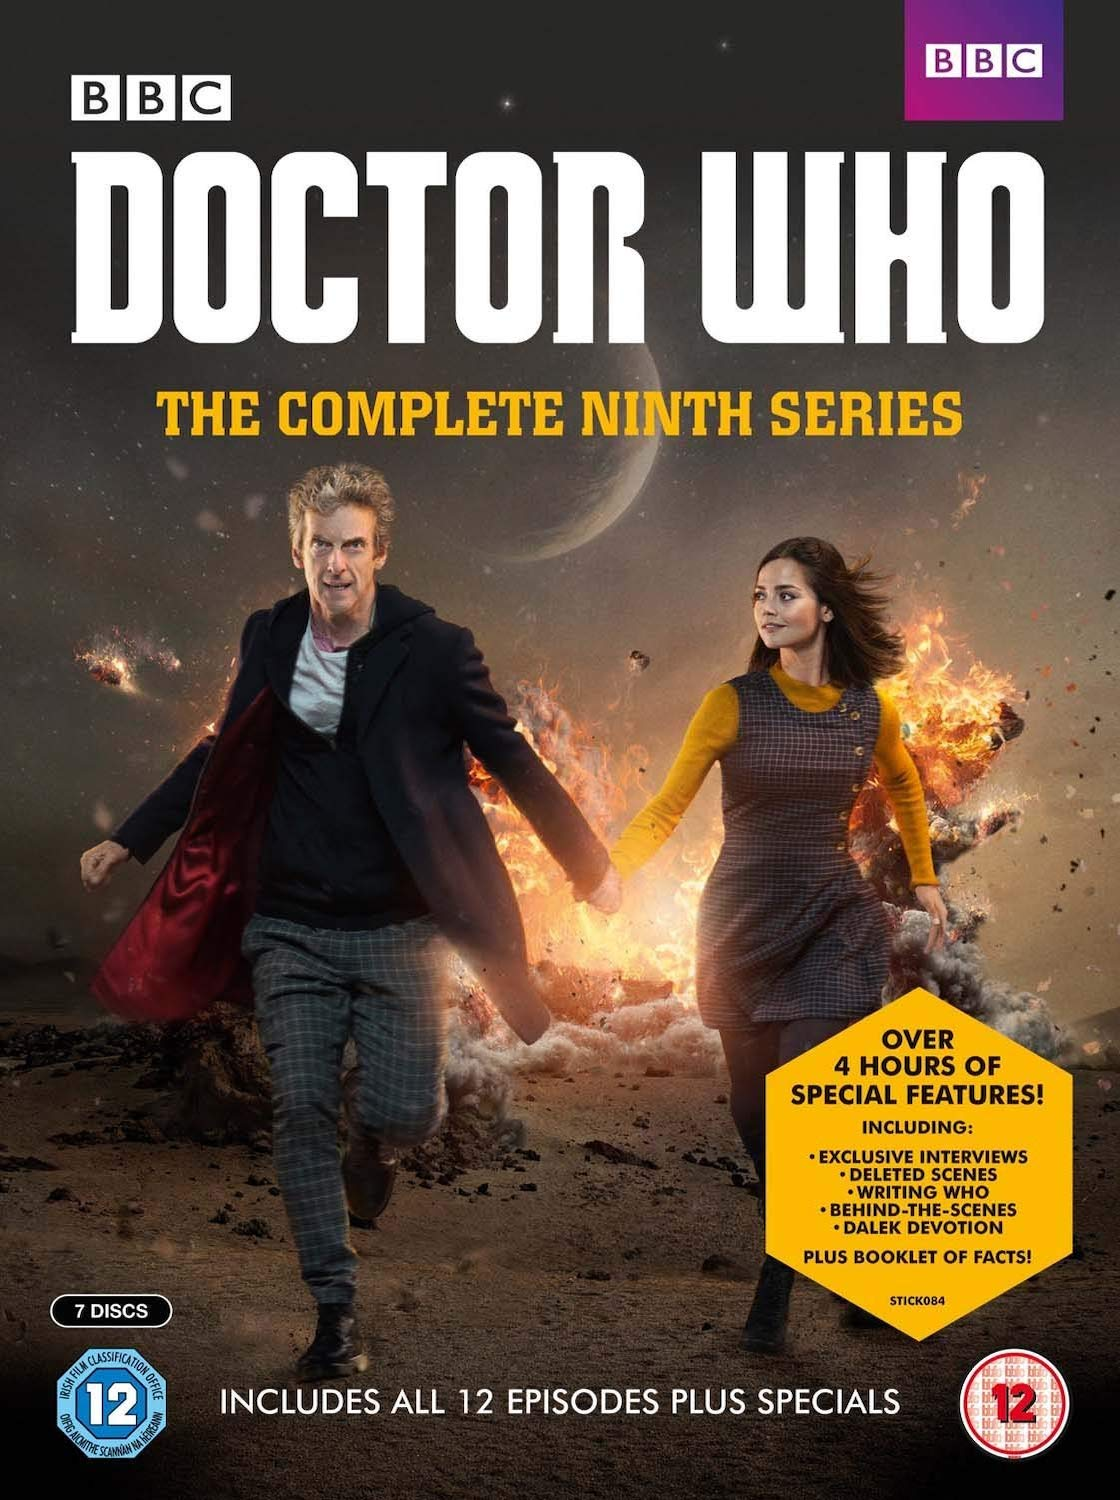 Doctor Who The Complete Series 9 Box Set